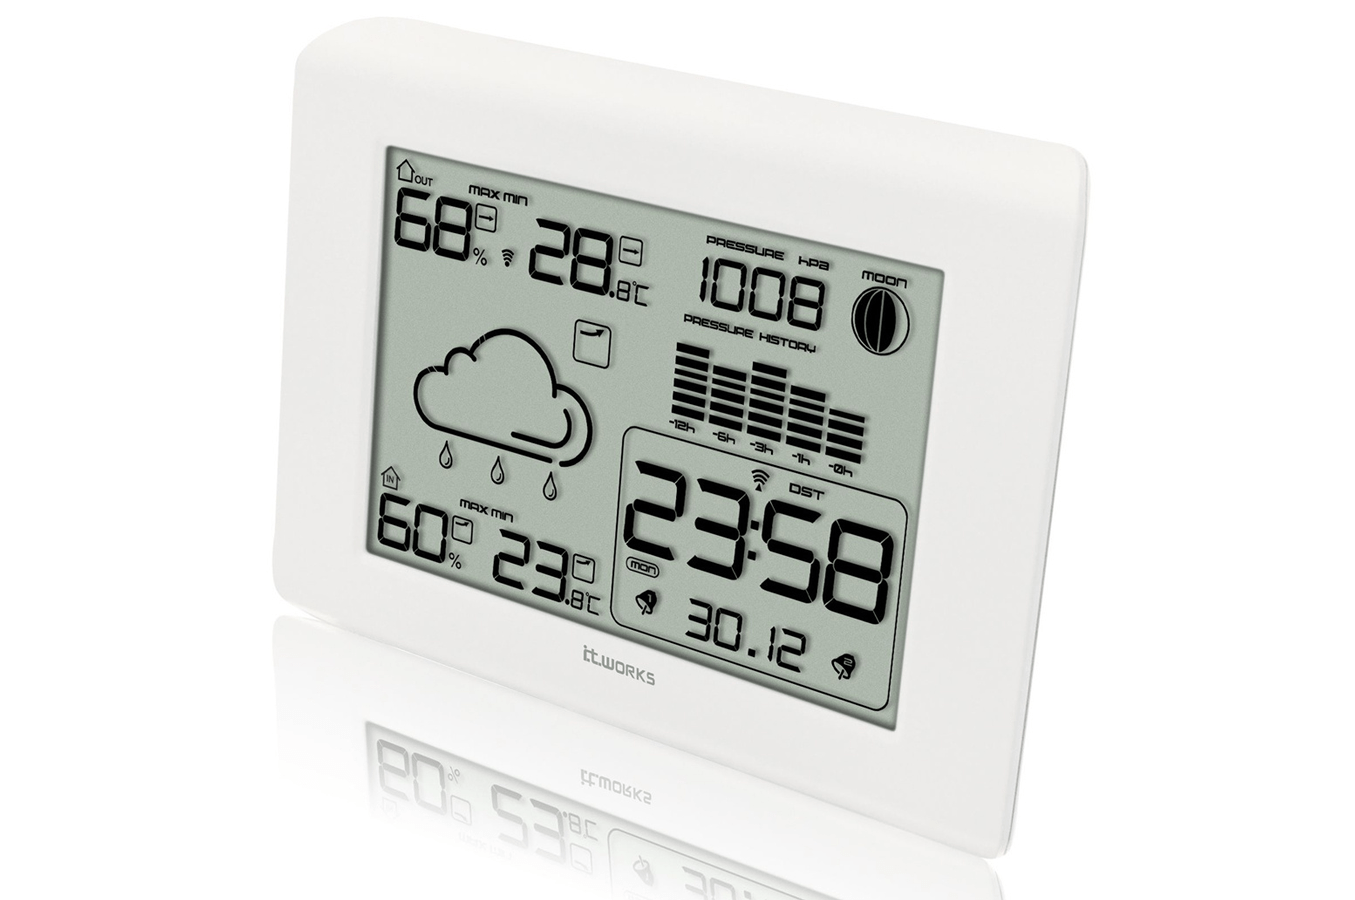 Thermometre Electronique Interieur Exterieur Station Météo It Works Sunw2 1260065 Darty